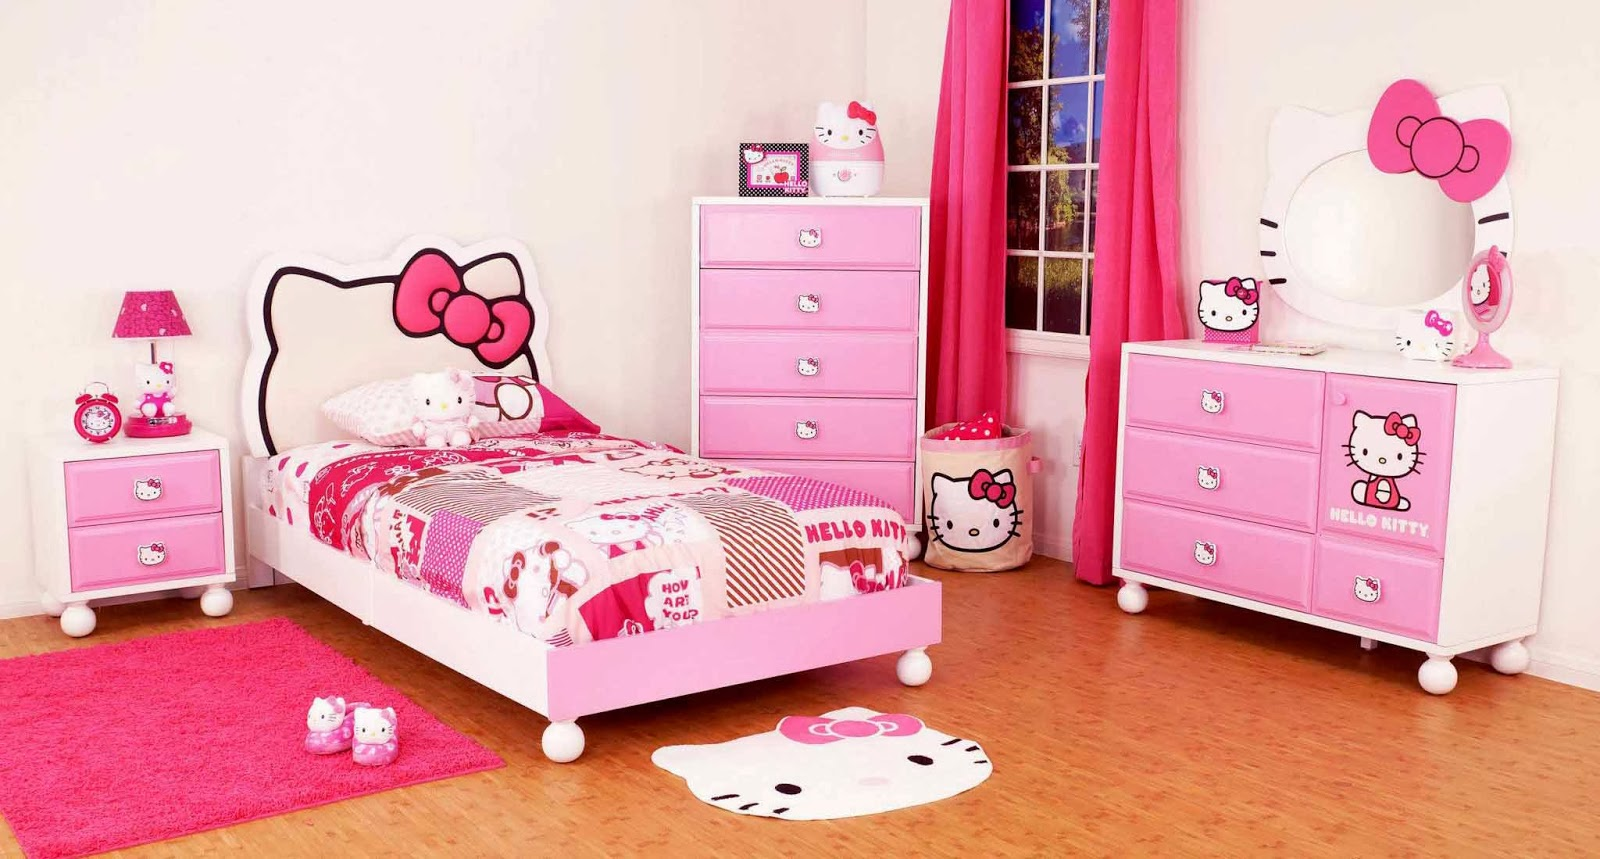 Serba Hello Kitty Serba Hello Kitty Wajib Baca